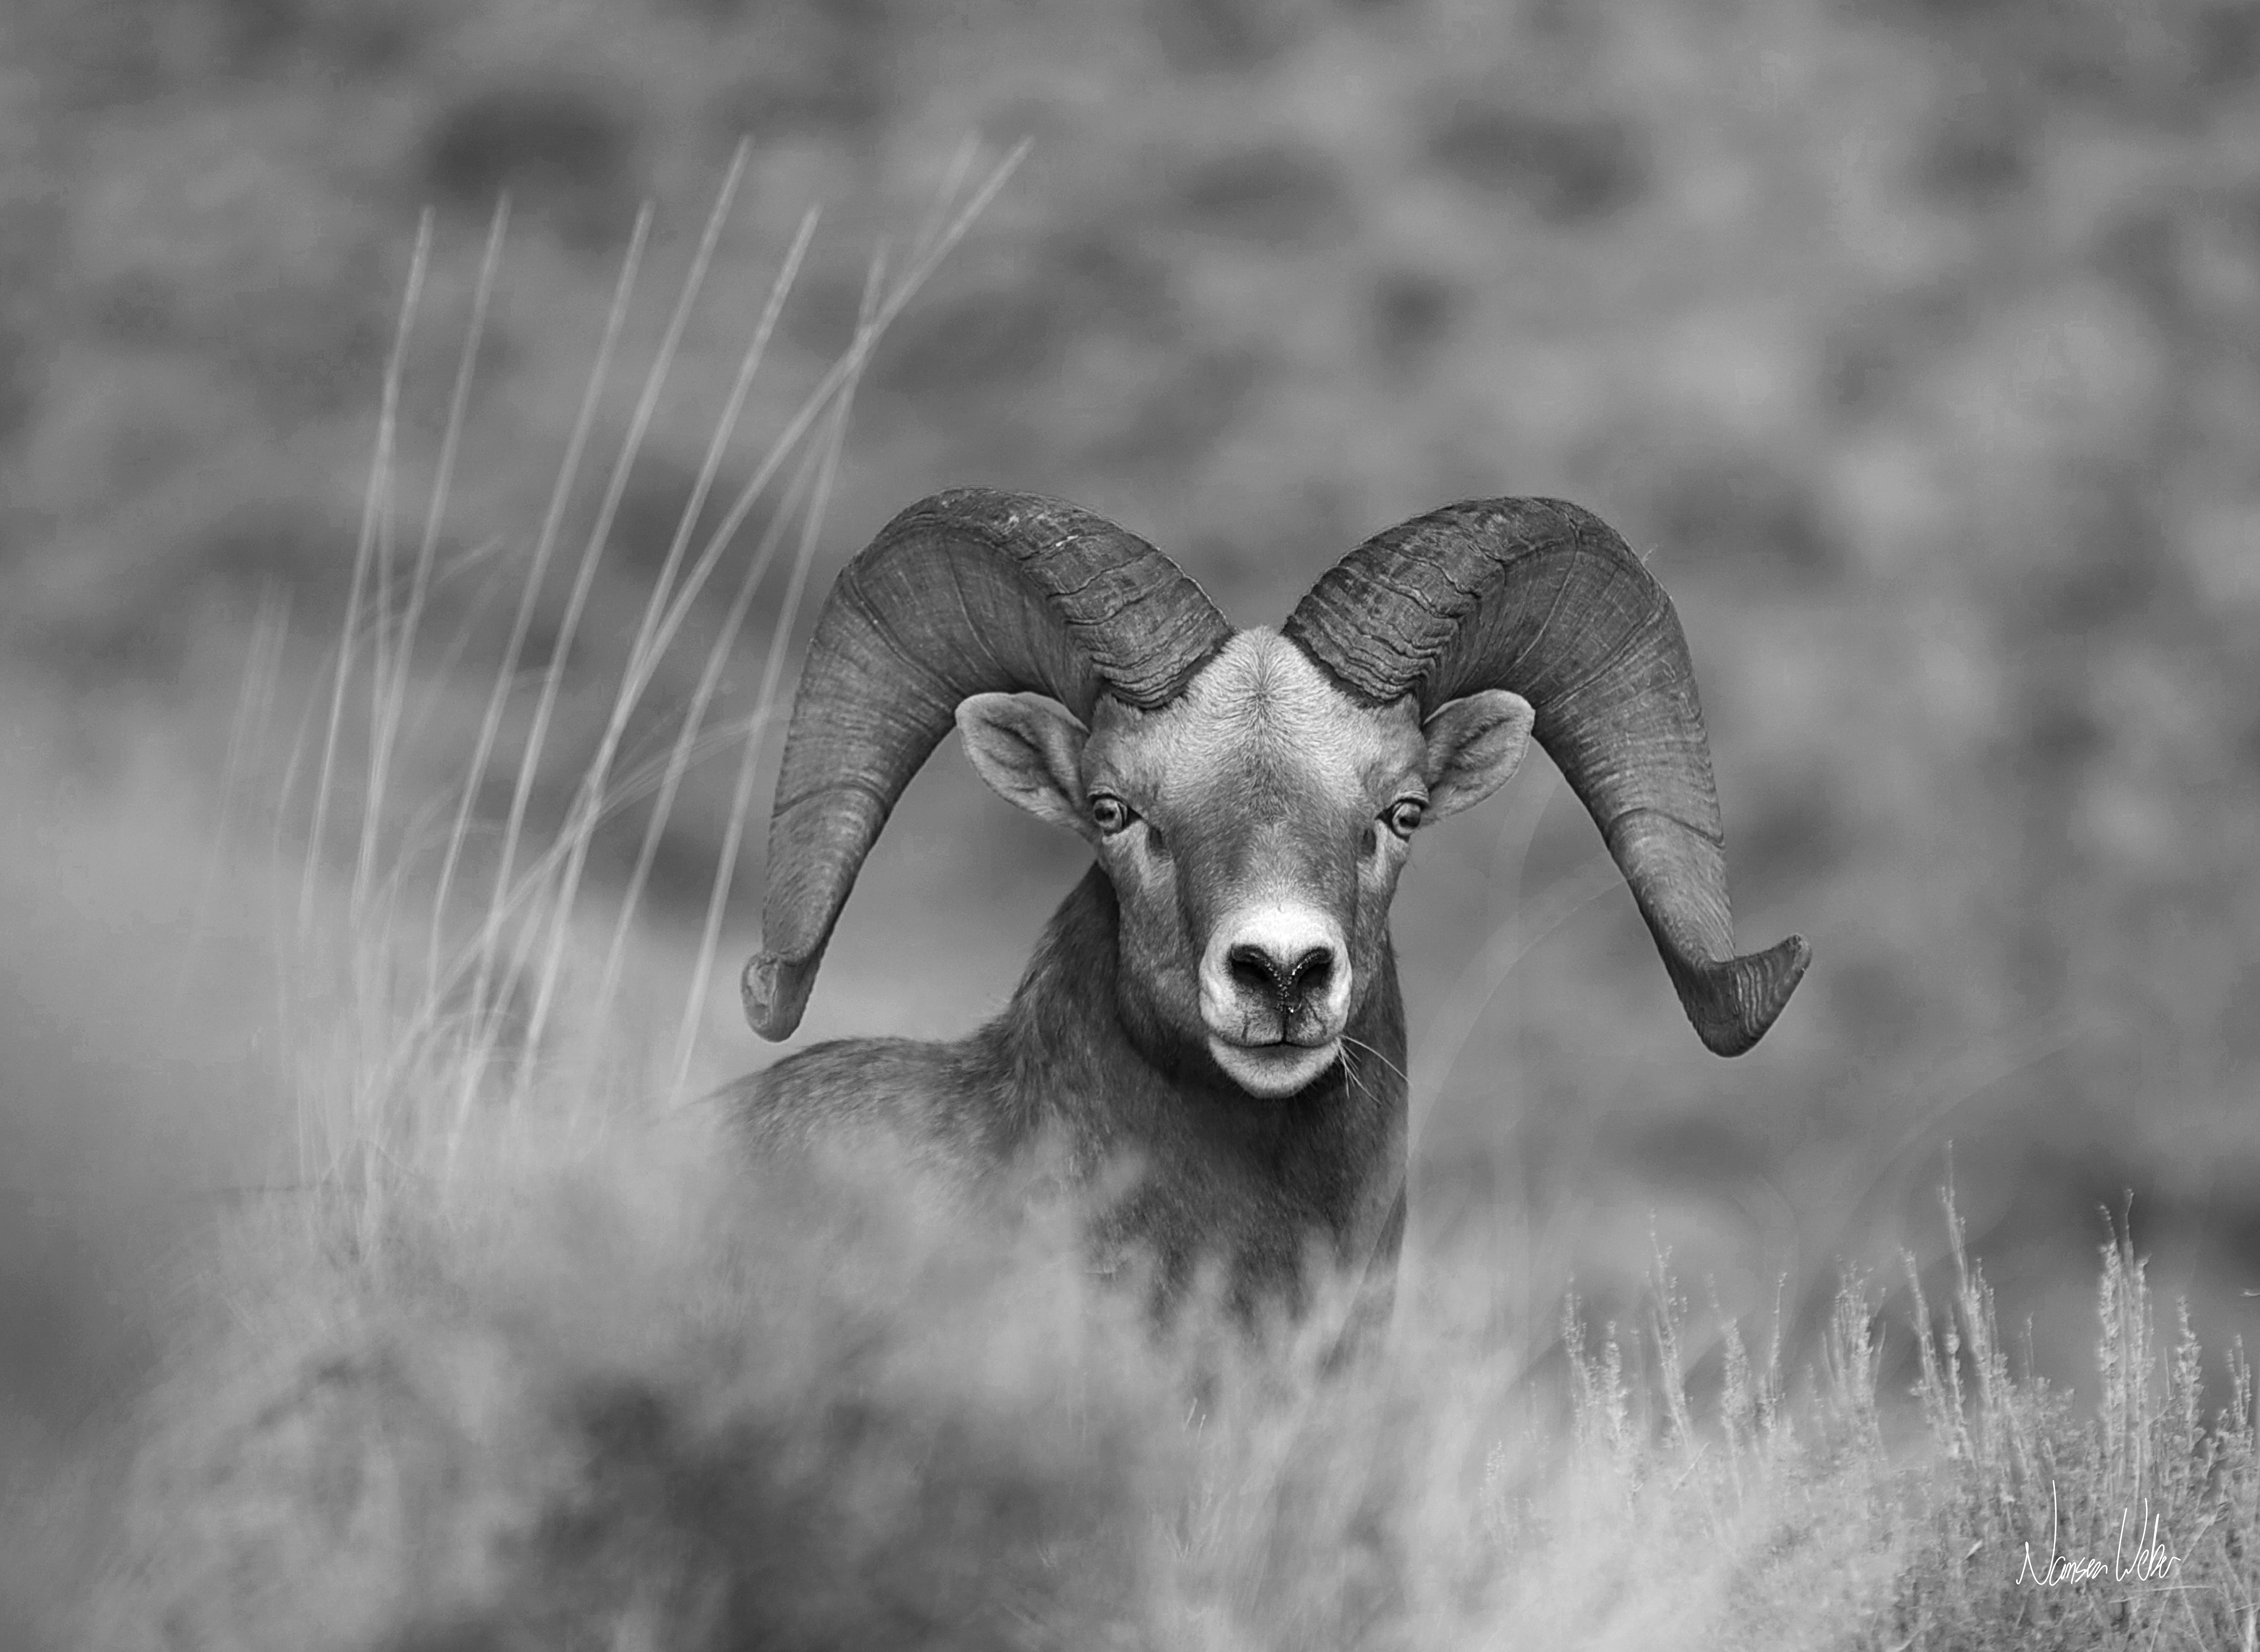 California Bighorn Sheep (Ovis cana)